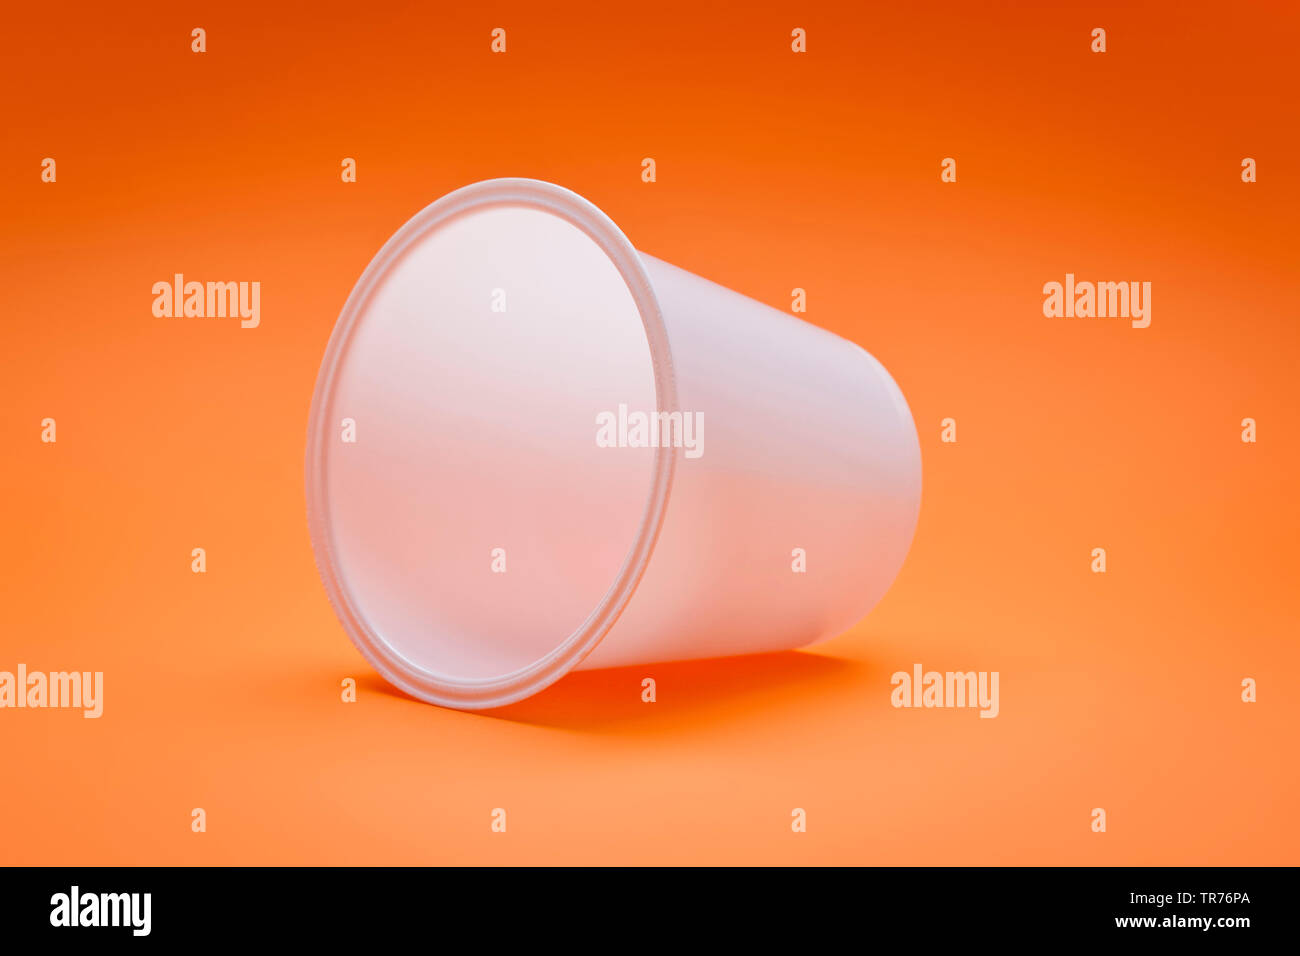 weisser Plastikbecher auf orangefarbenem Untergrund | white empty plastic cup on an orange background | BLWS499556.jpg [ (c) blickwinkel/McPHOTO/M. Ga - Stock Image